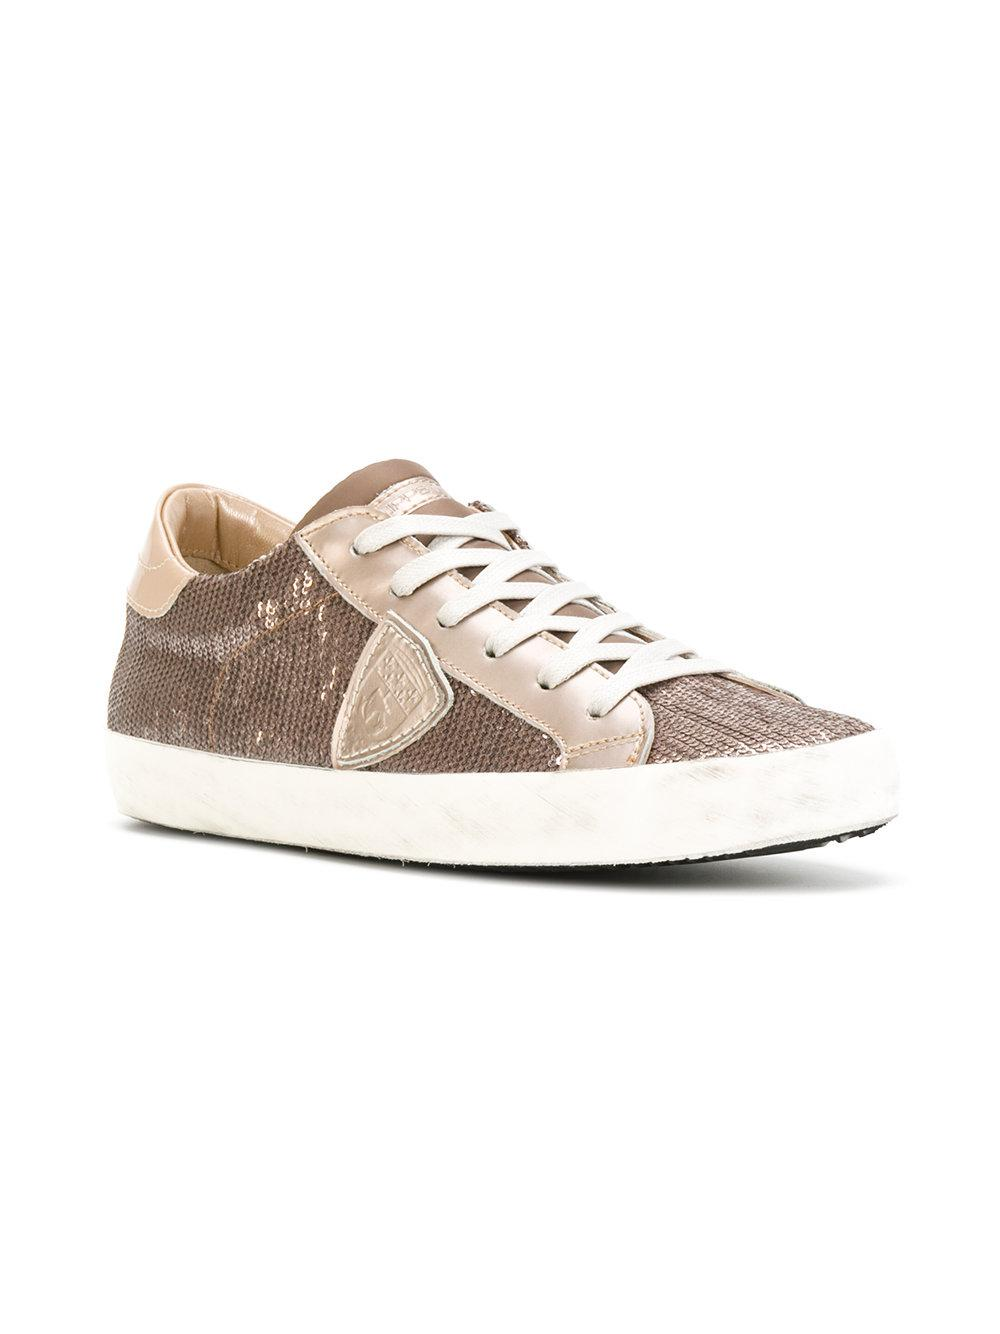 embellished lace up sneakers - Nude & Neutrals Philippe Model wELkN6